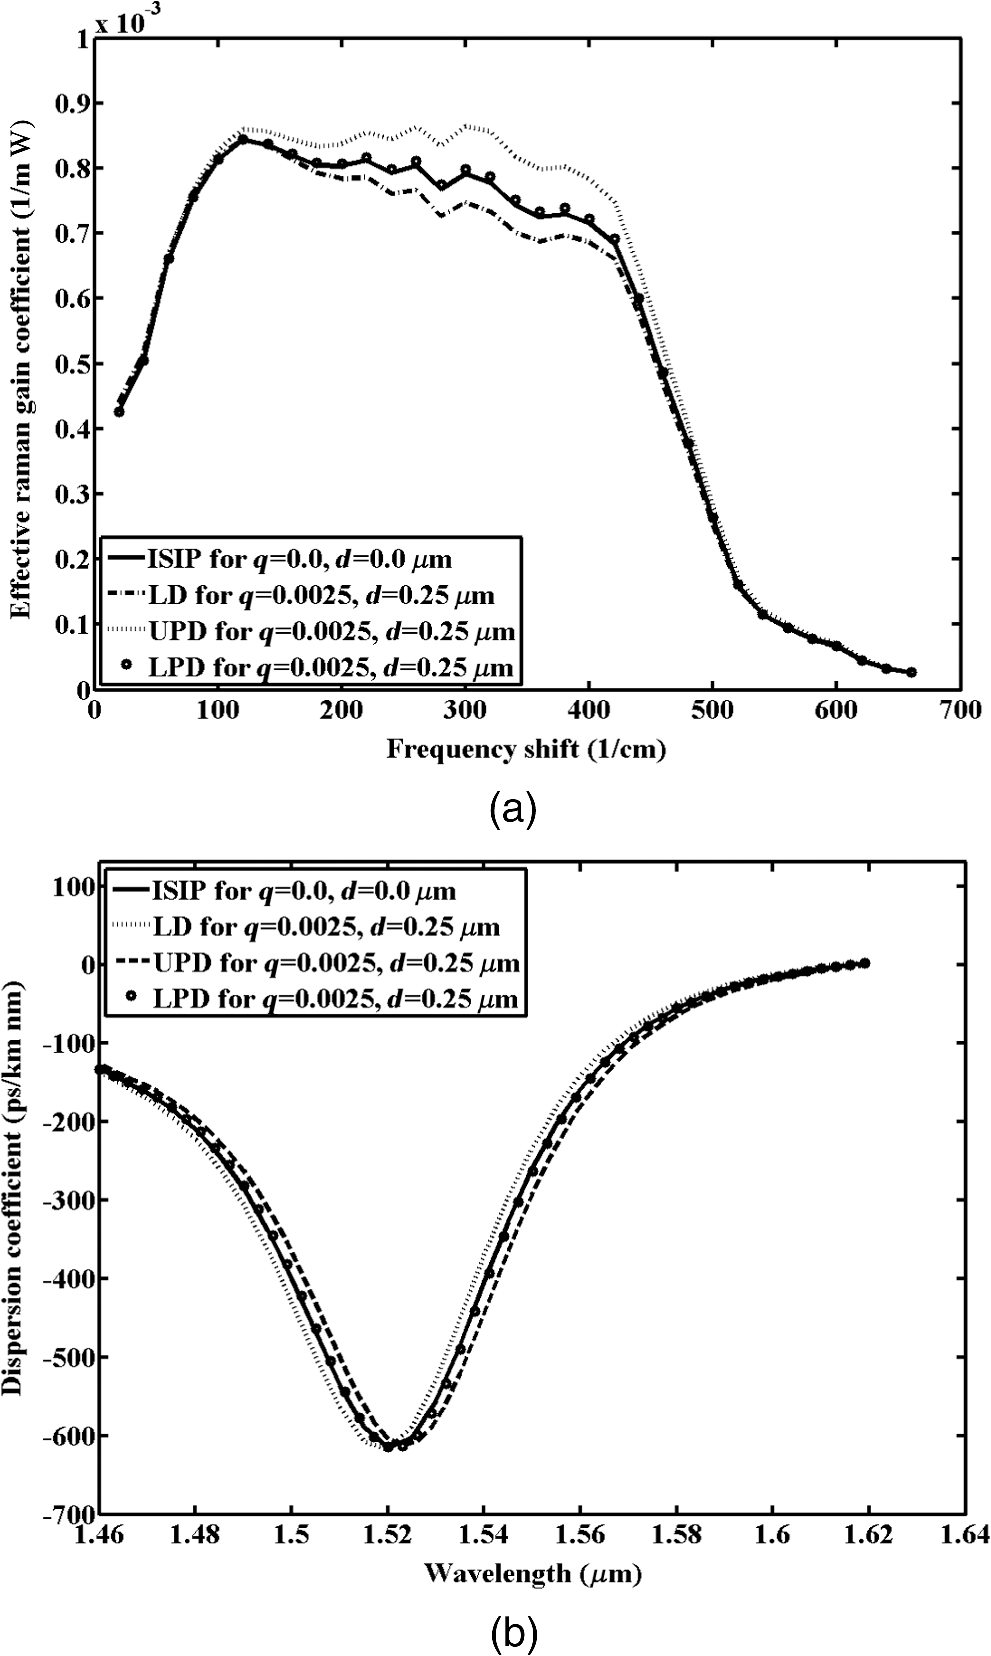 Effect of lower and upper parabolic dips in refractive index